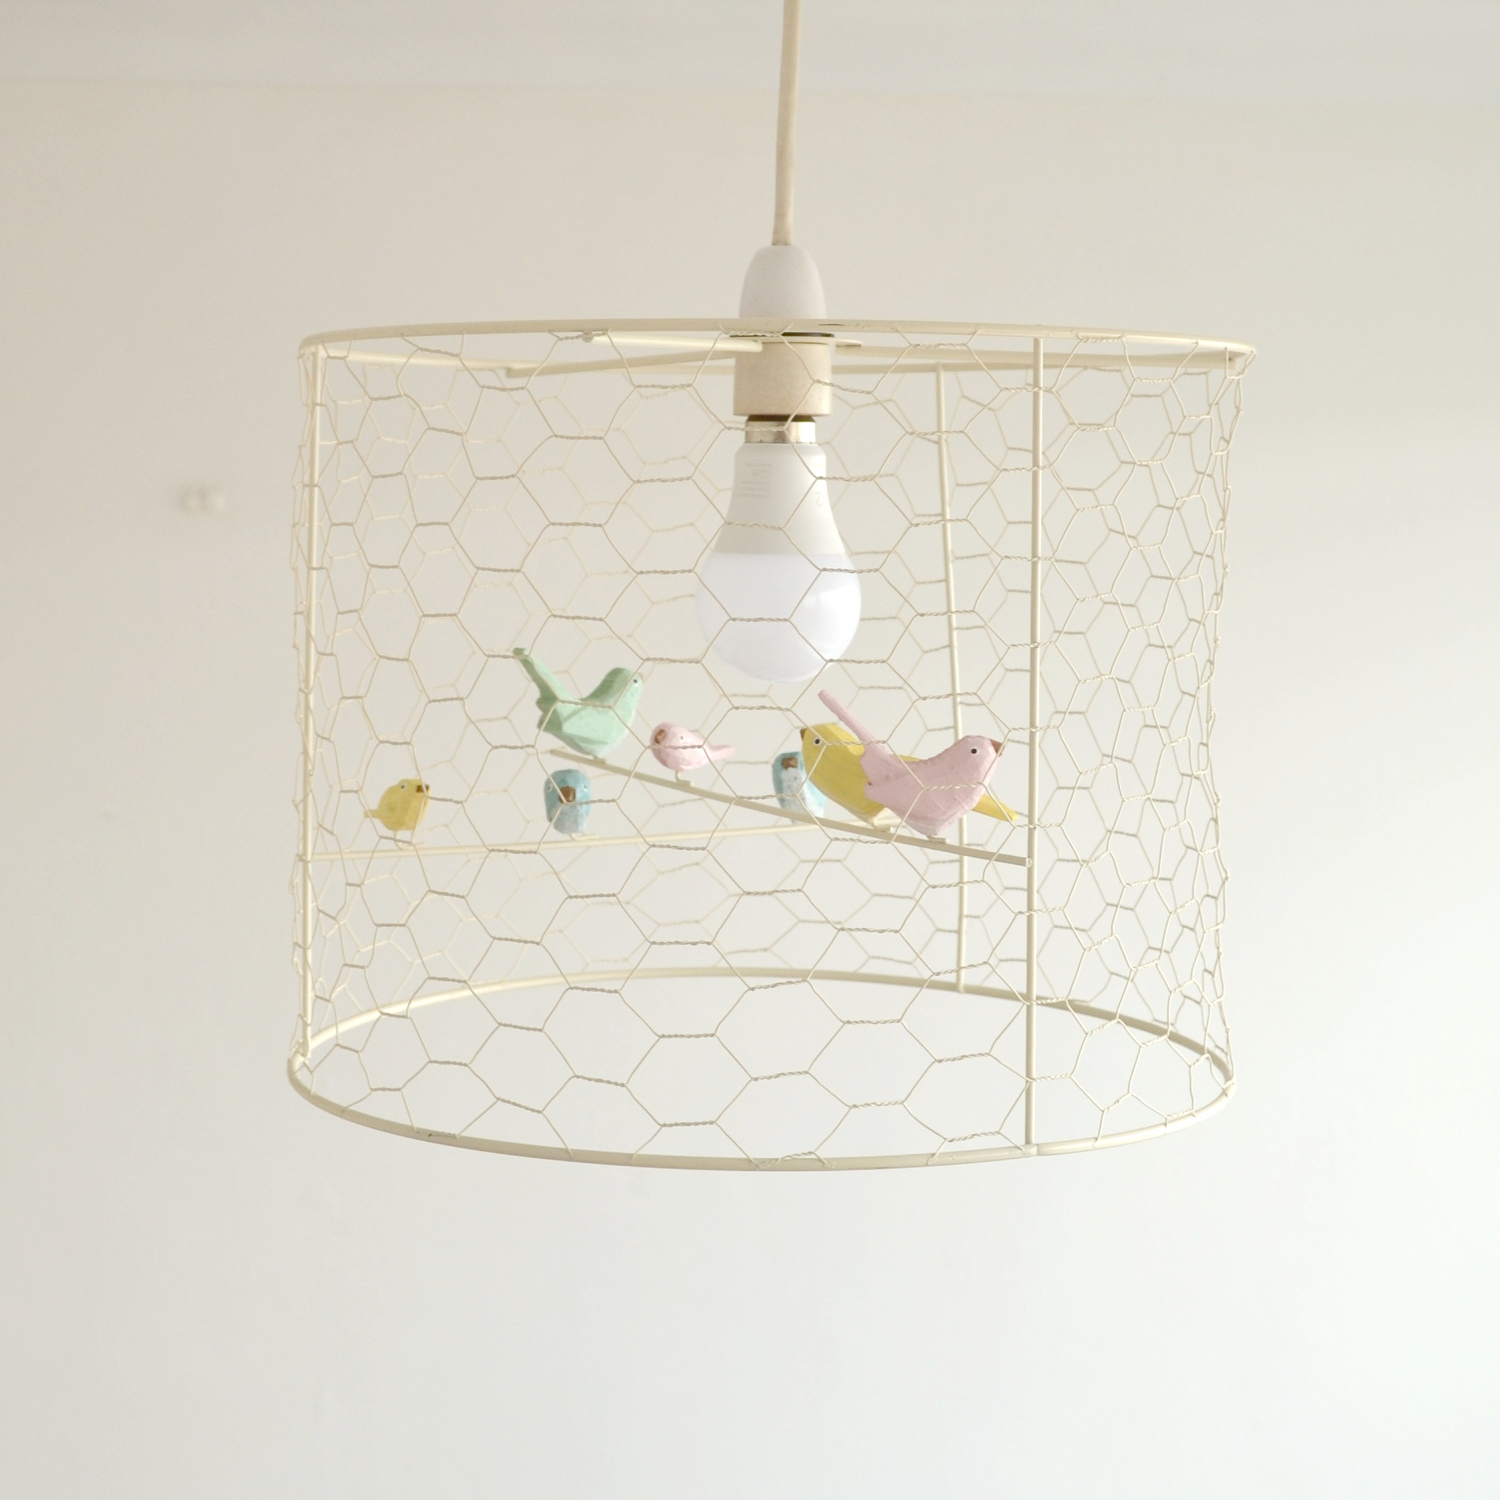 Birdcage lampshade dreams and wishes birdcage lampshade aloadofball Image collections